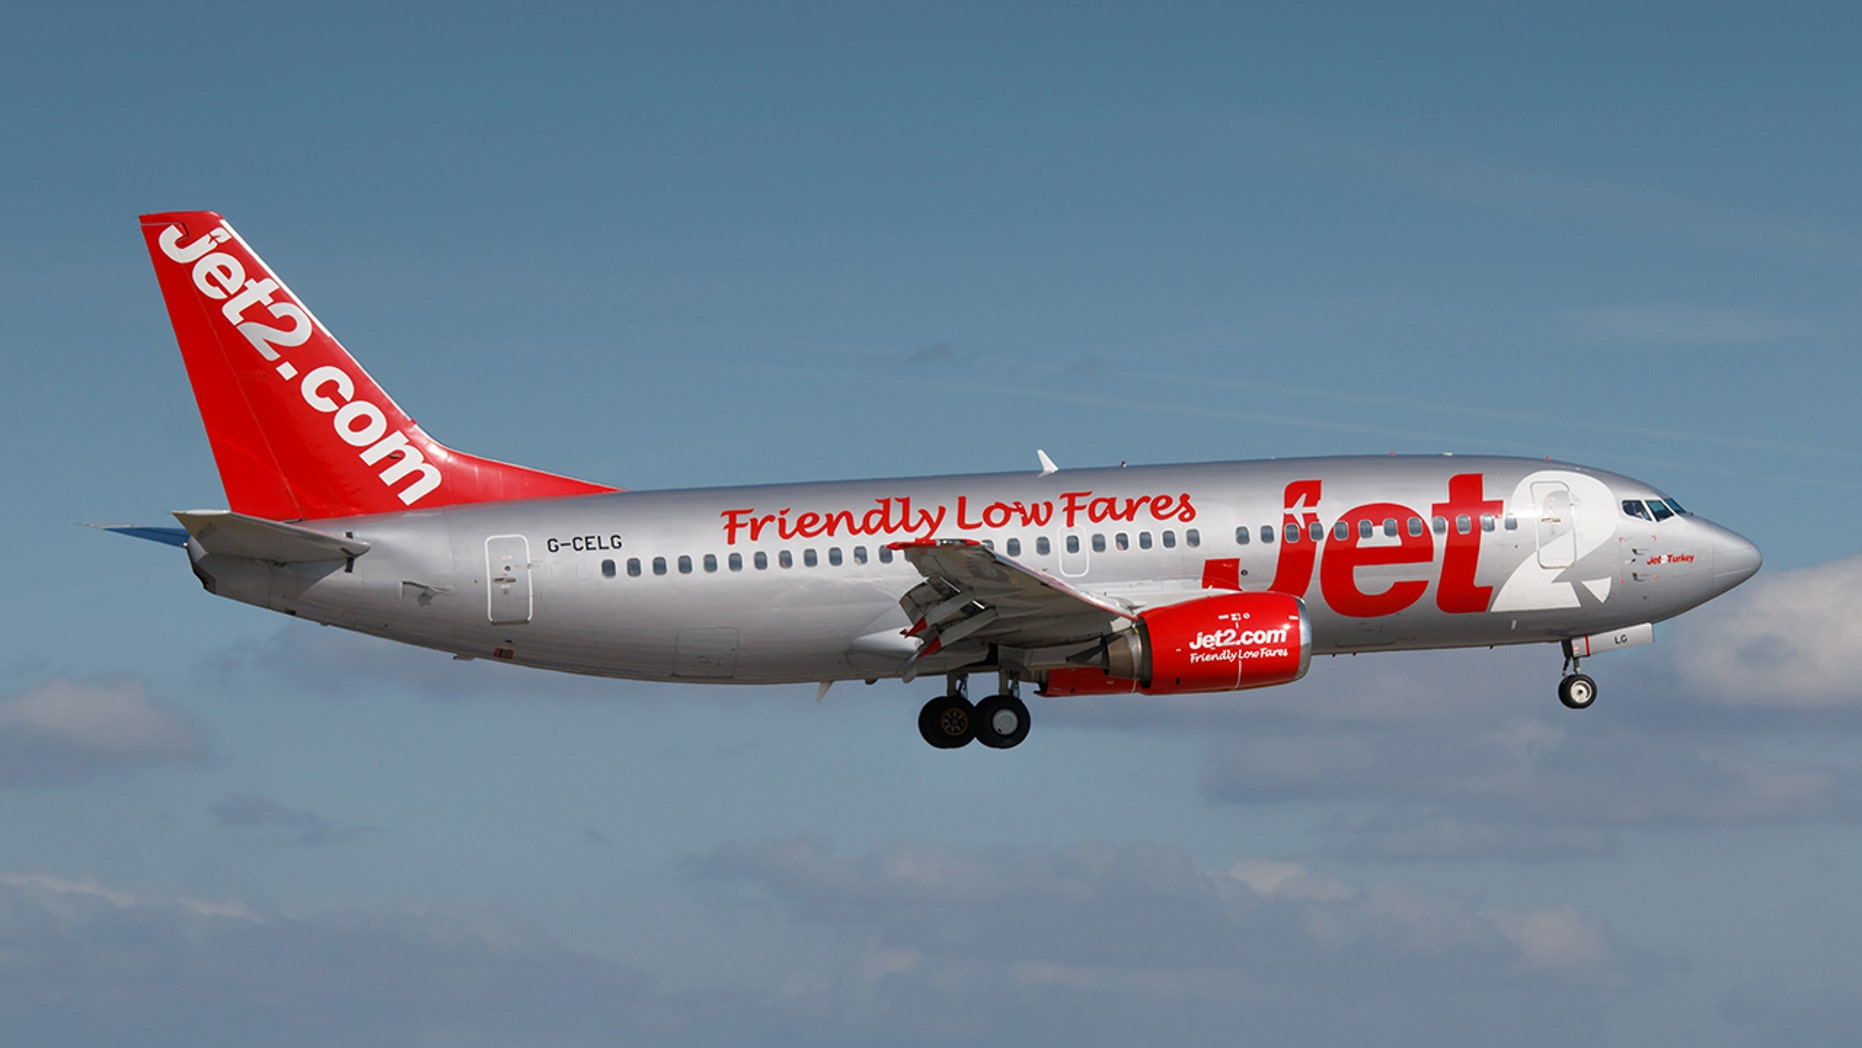 A stressed pilot completinghis training is to blame for a botched Jet2 landing that caused damage to the aircraft.